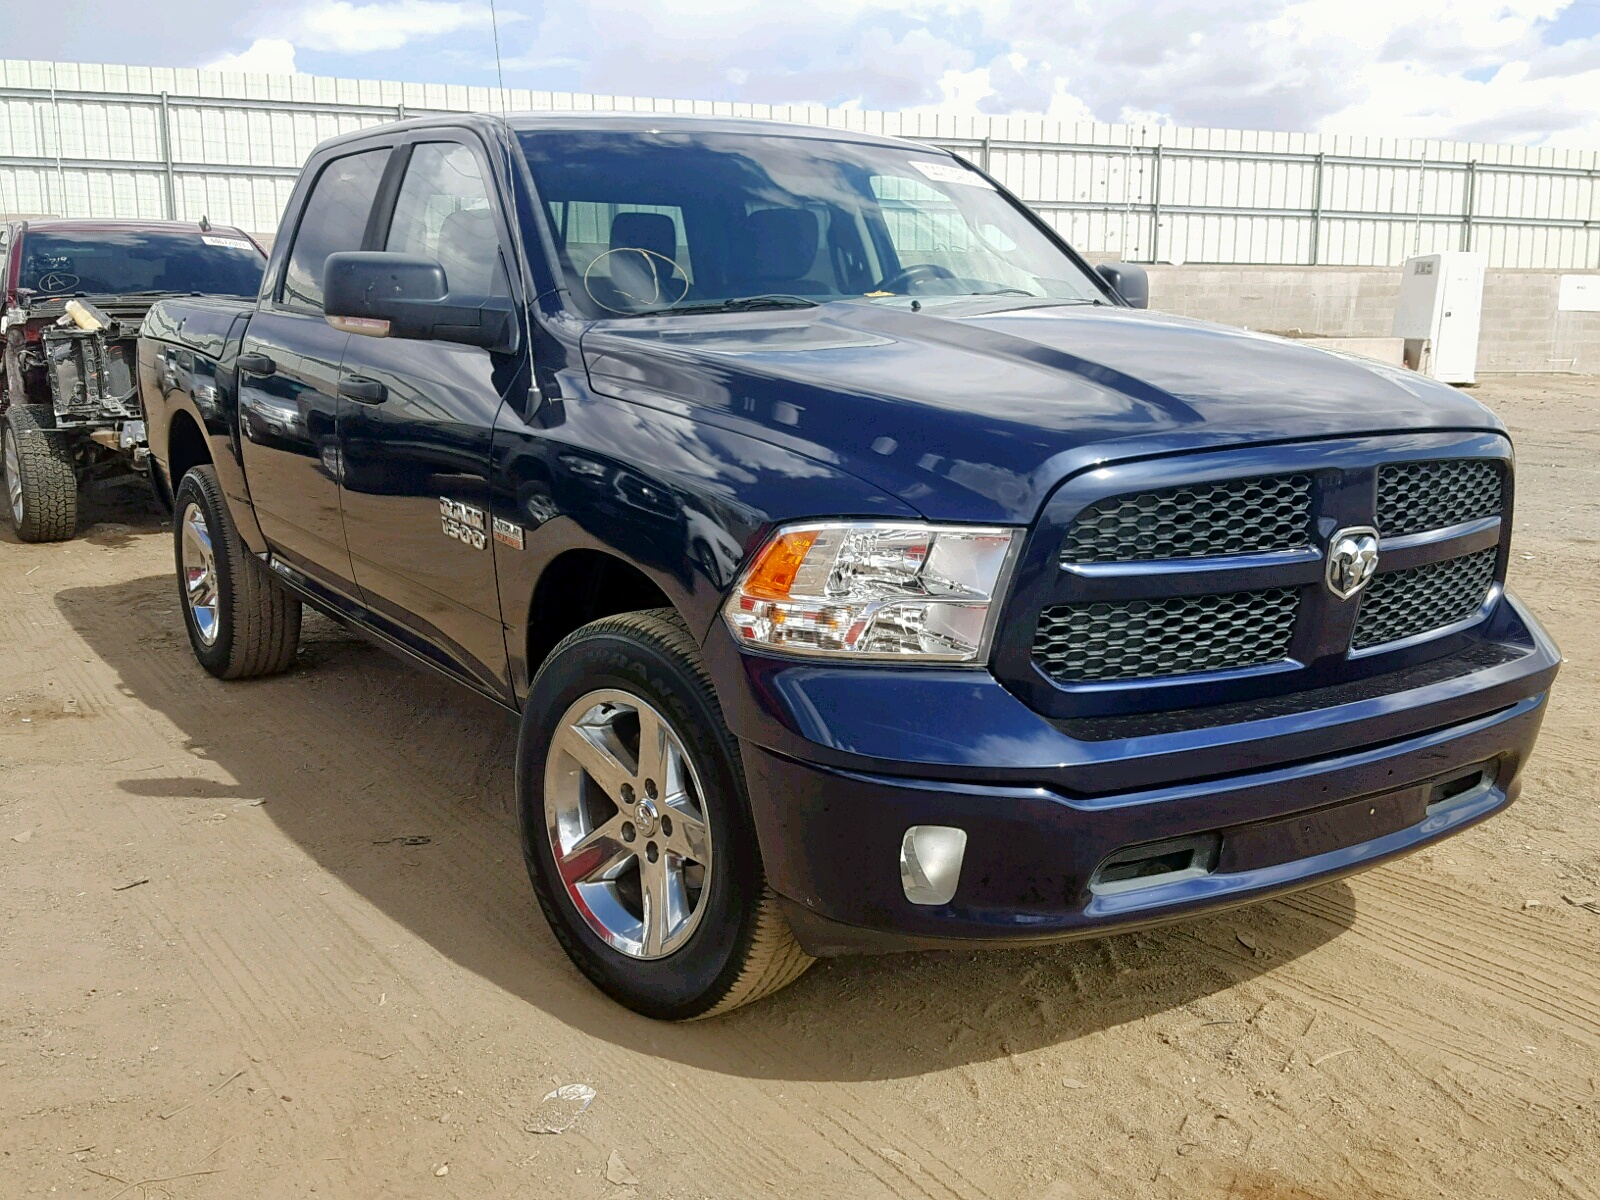 1C6RR7LT6ES134333 - 2014 Ram 1500 Slt 5.7L Left View